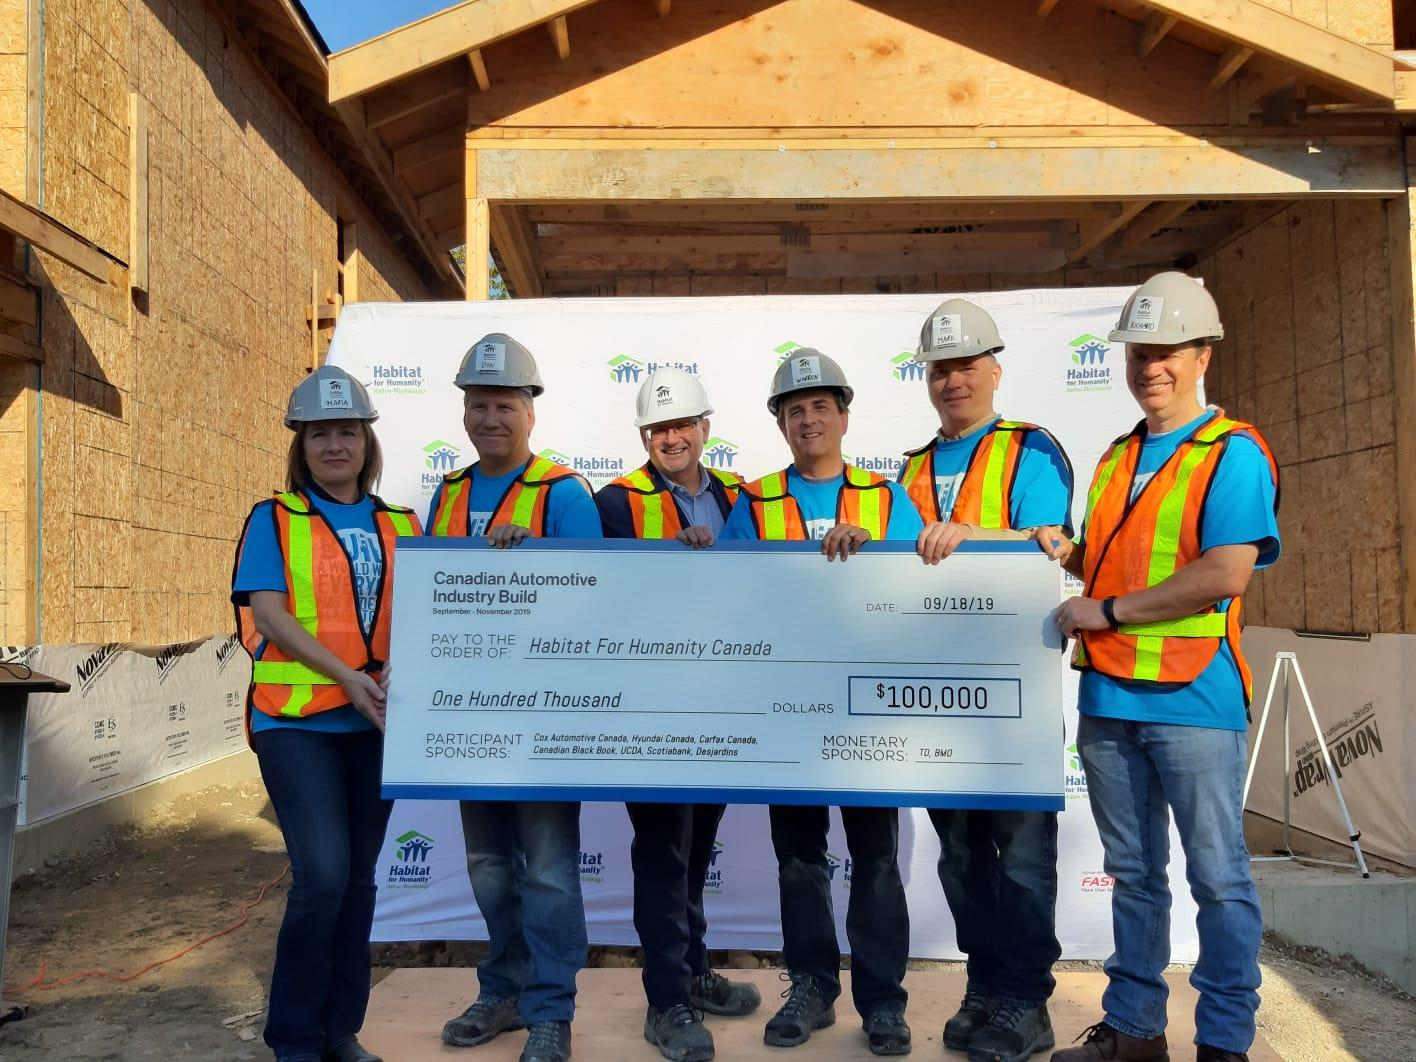 Habitat Canada President and CEO, Mark Rodgers, holds cheque from Canadian Automotive Industry Build partners